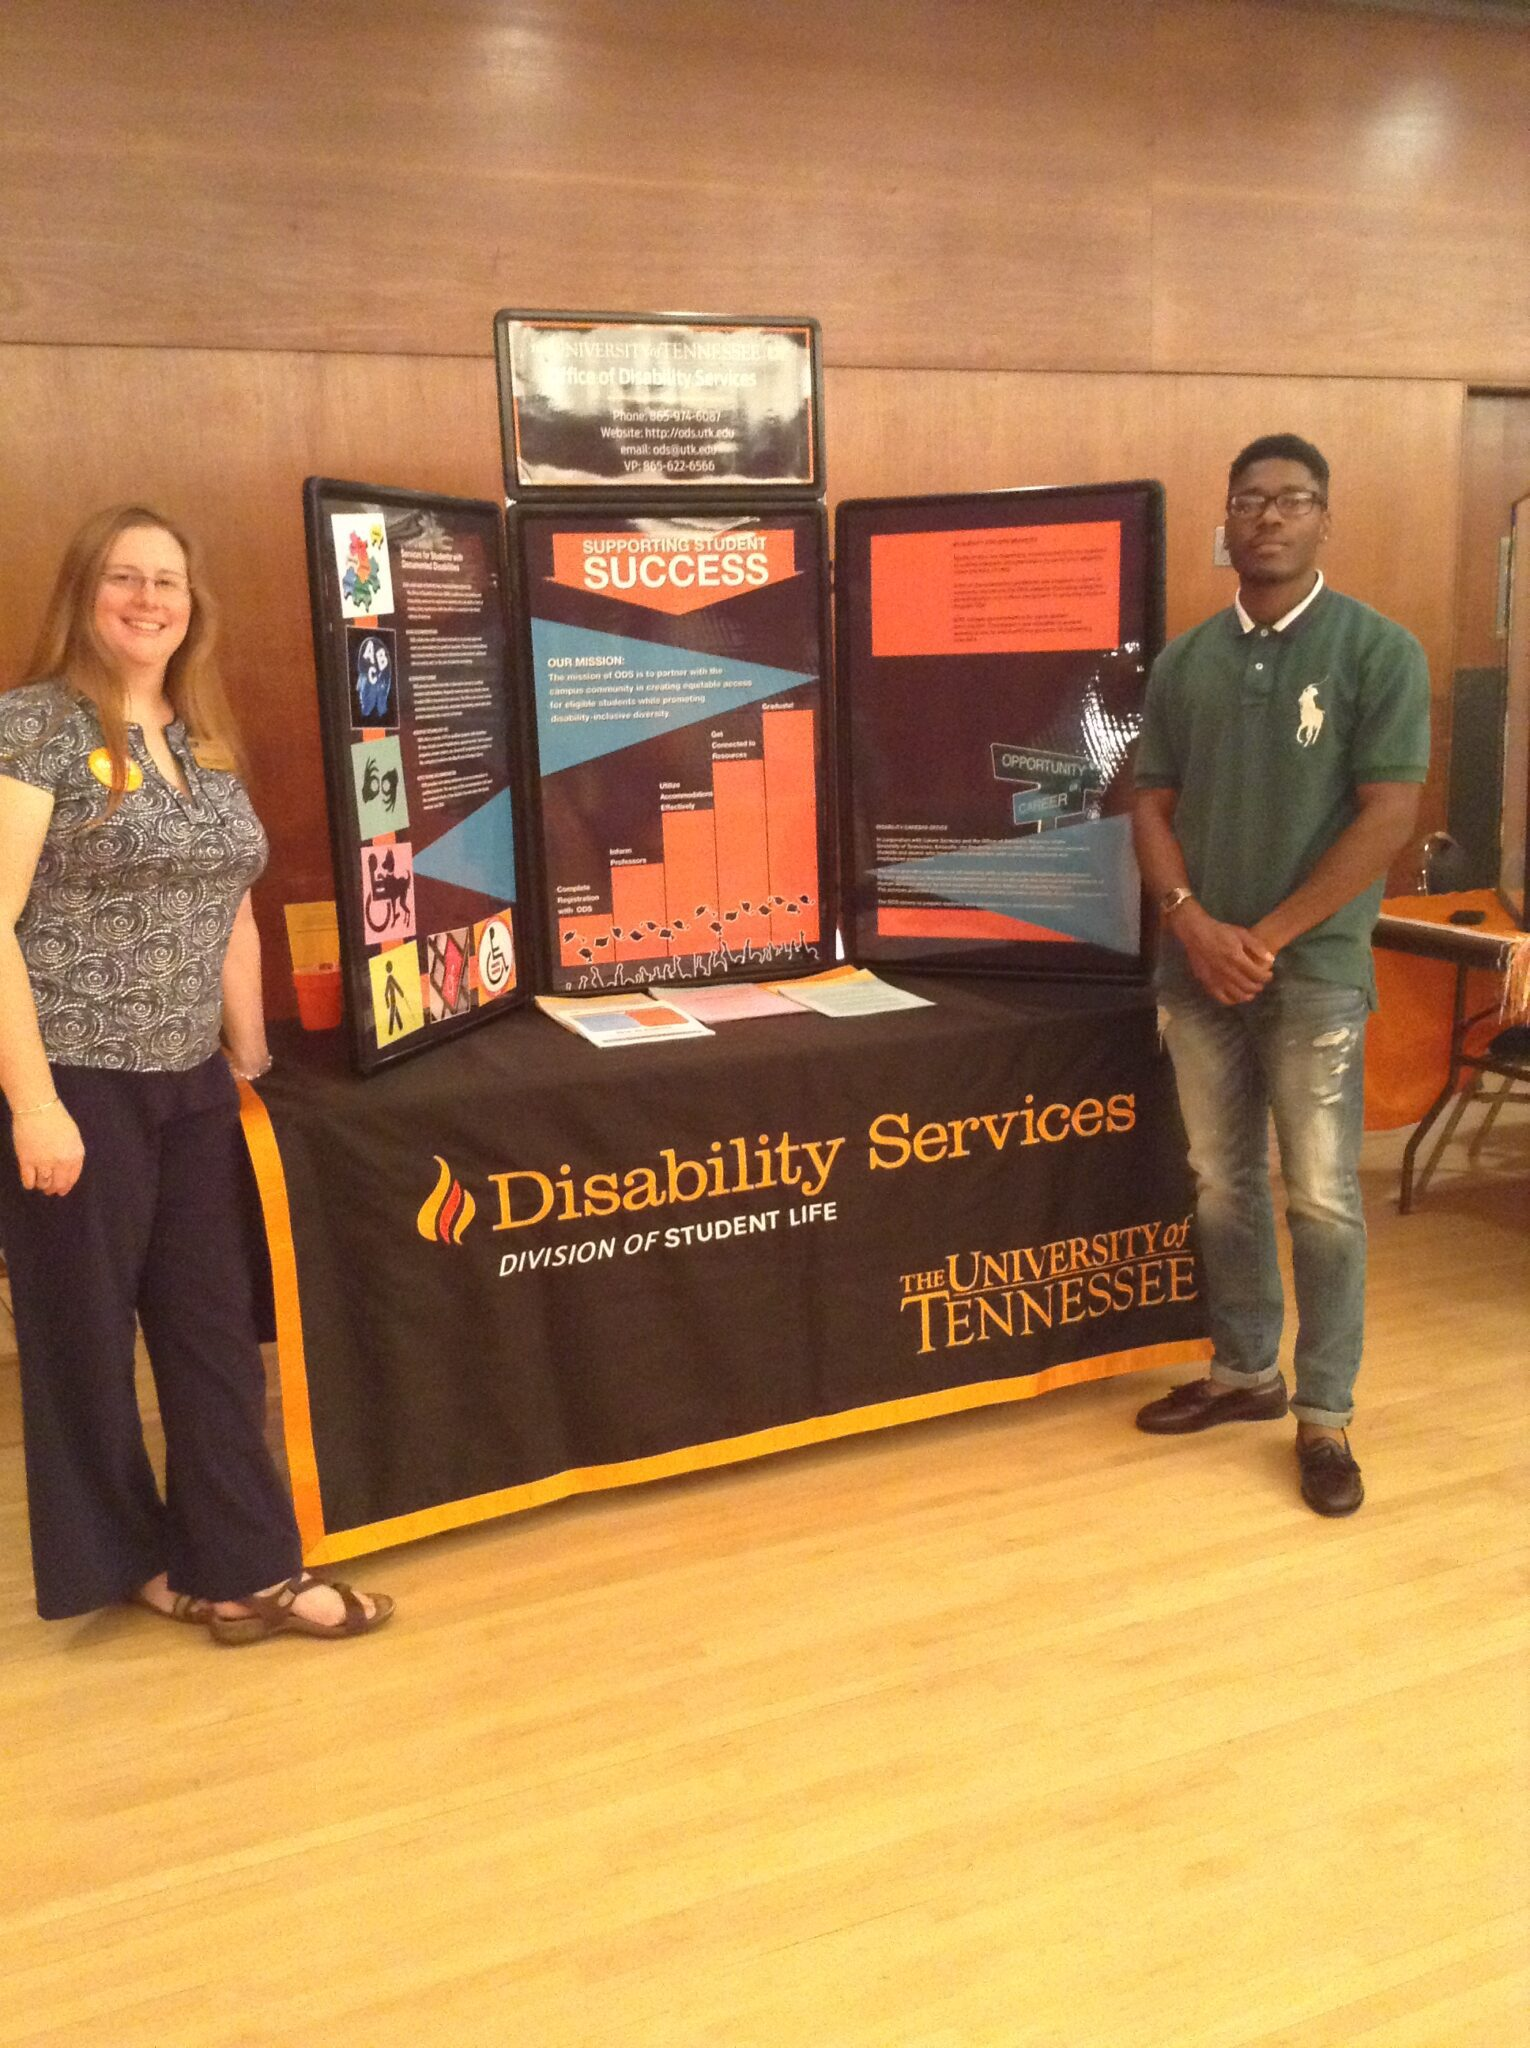 Sarah Bourque (left) and Emanuel Rollins, a verification specialist (right), standing beside the Office of Disability Services' booth